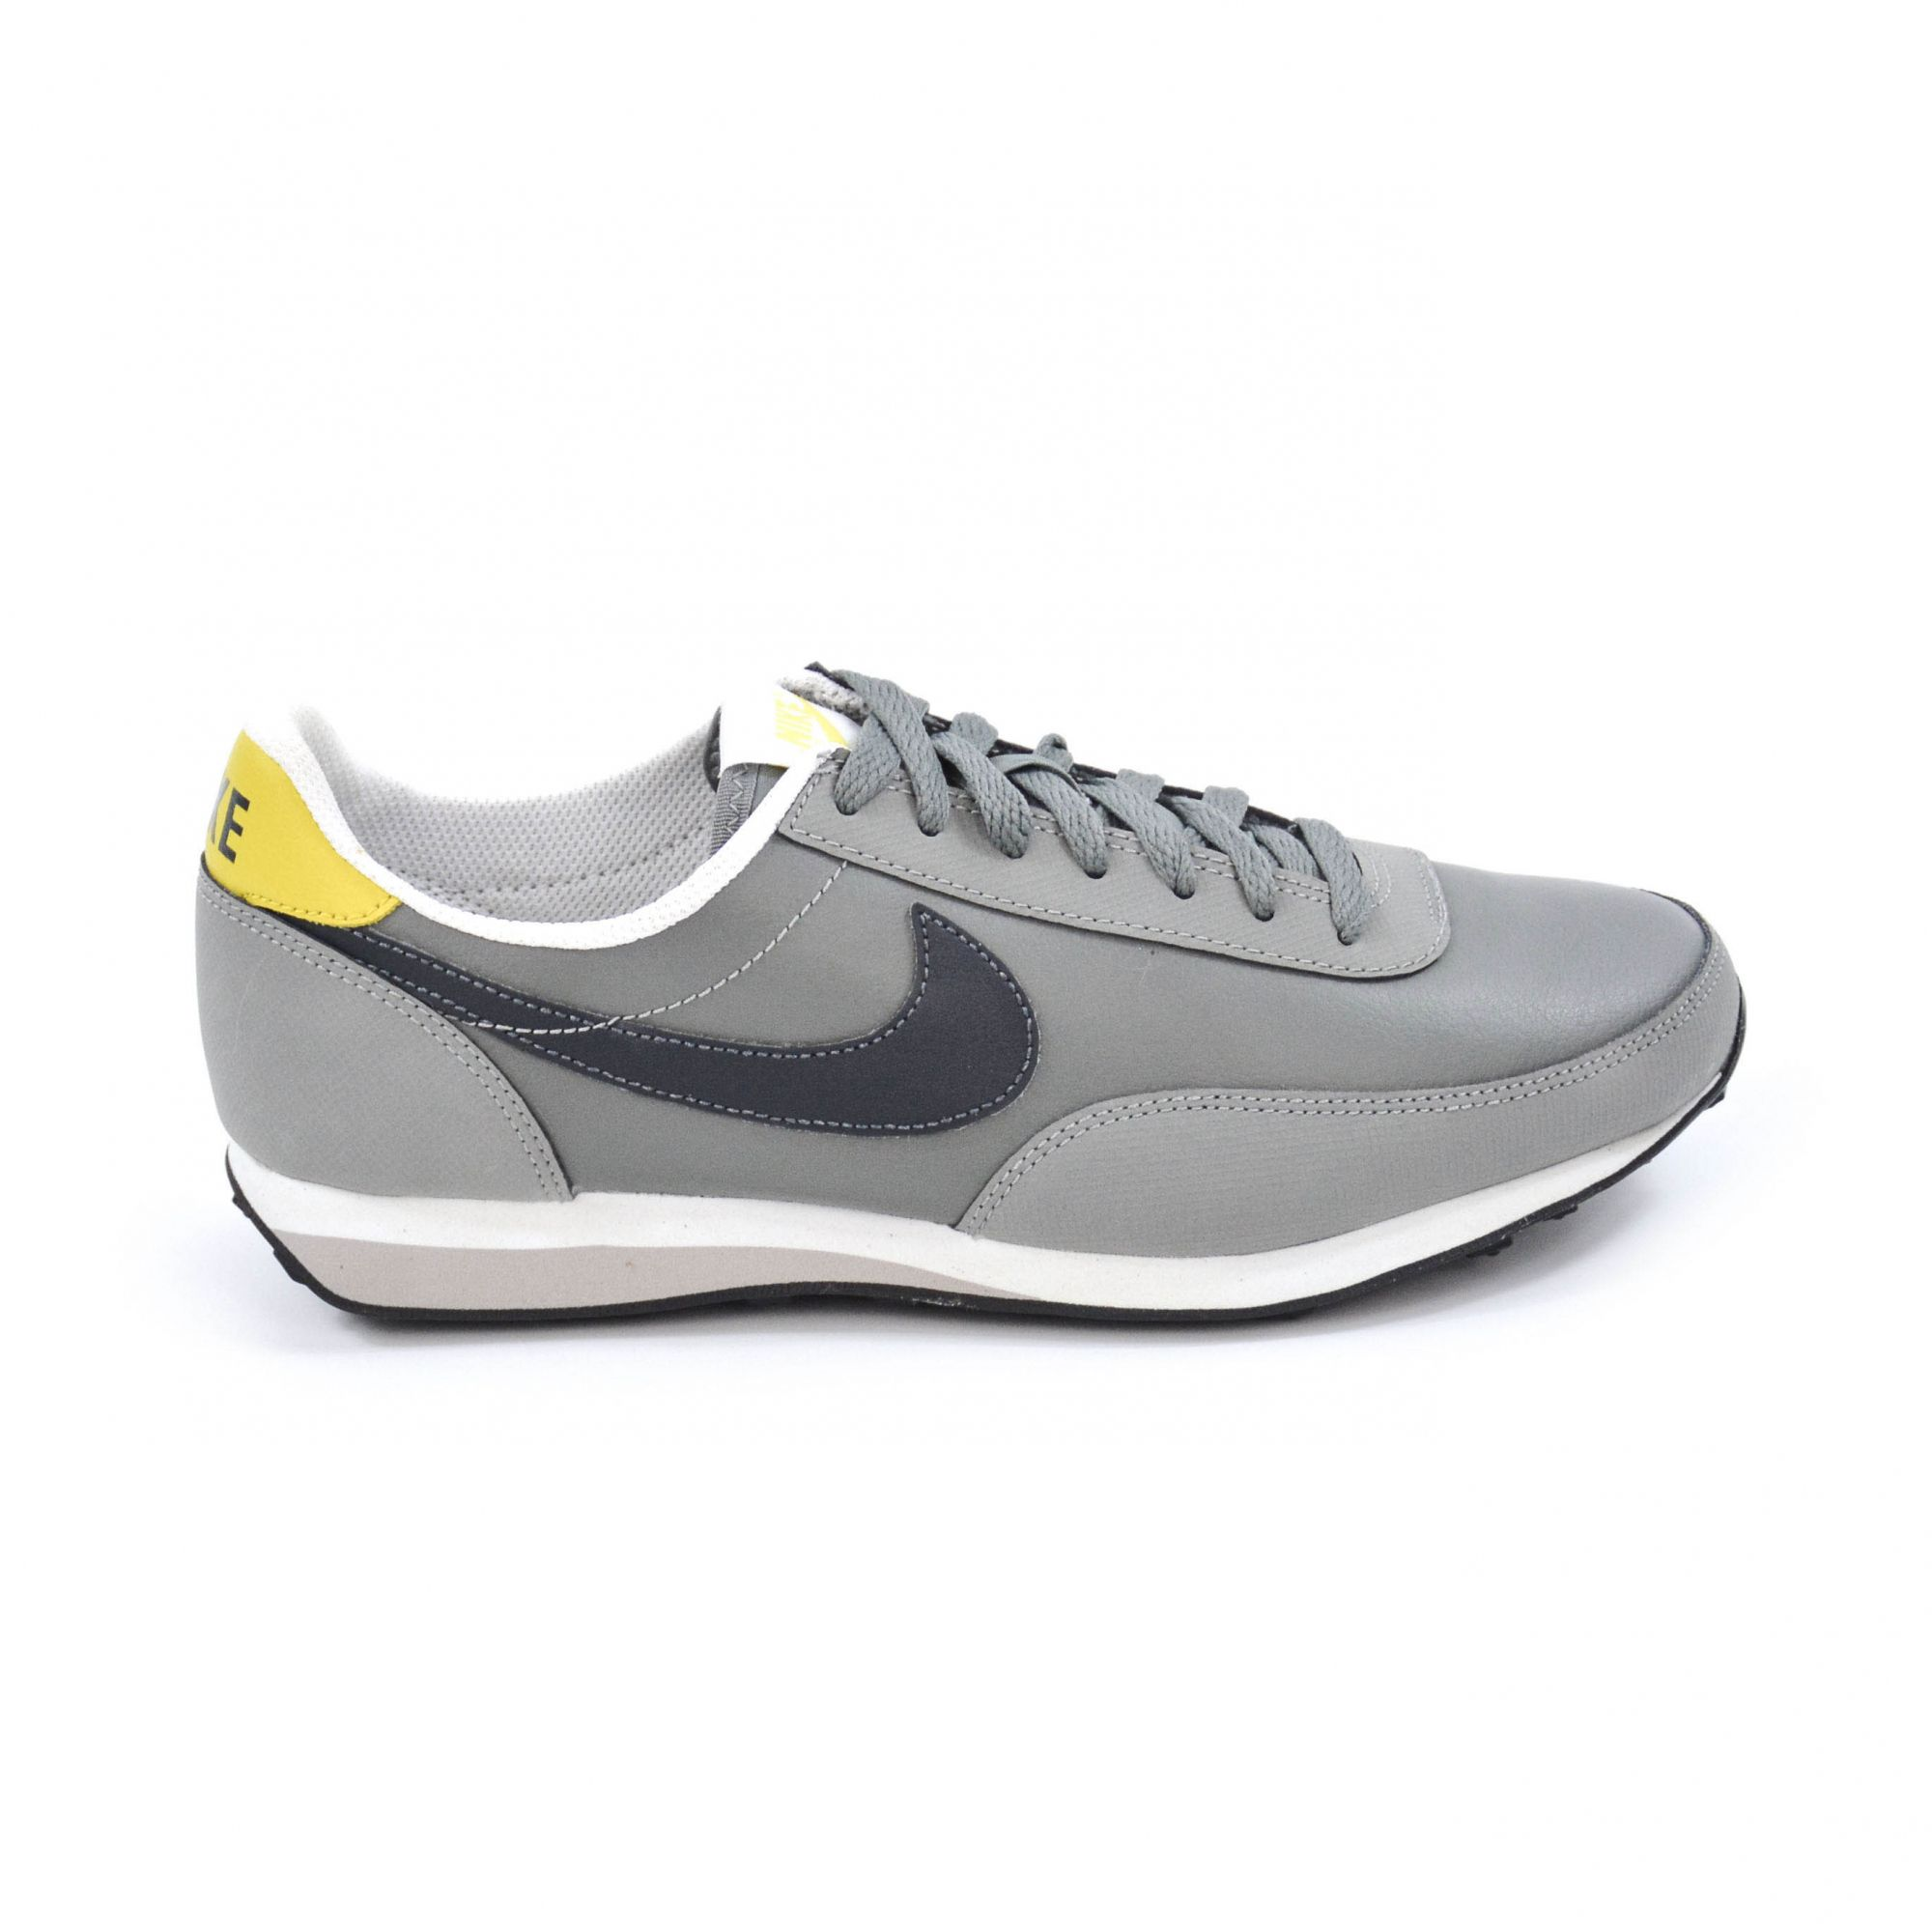 TÊNIS MASCULINO CASUAL CHUMBO/CINZA NIKE ELITE LEATHER SI - 8532